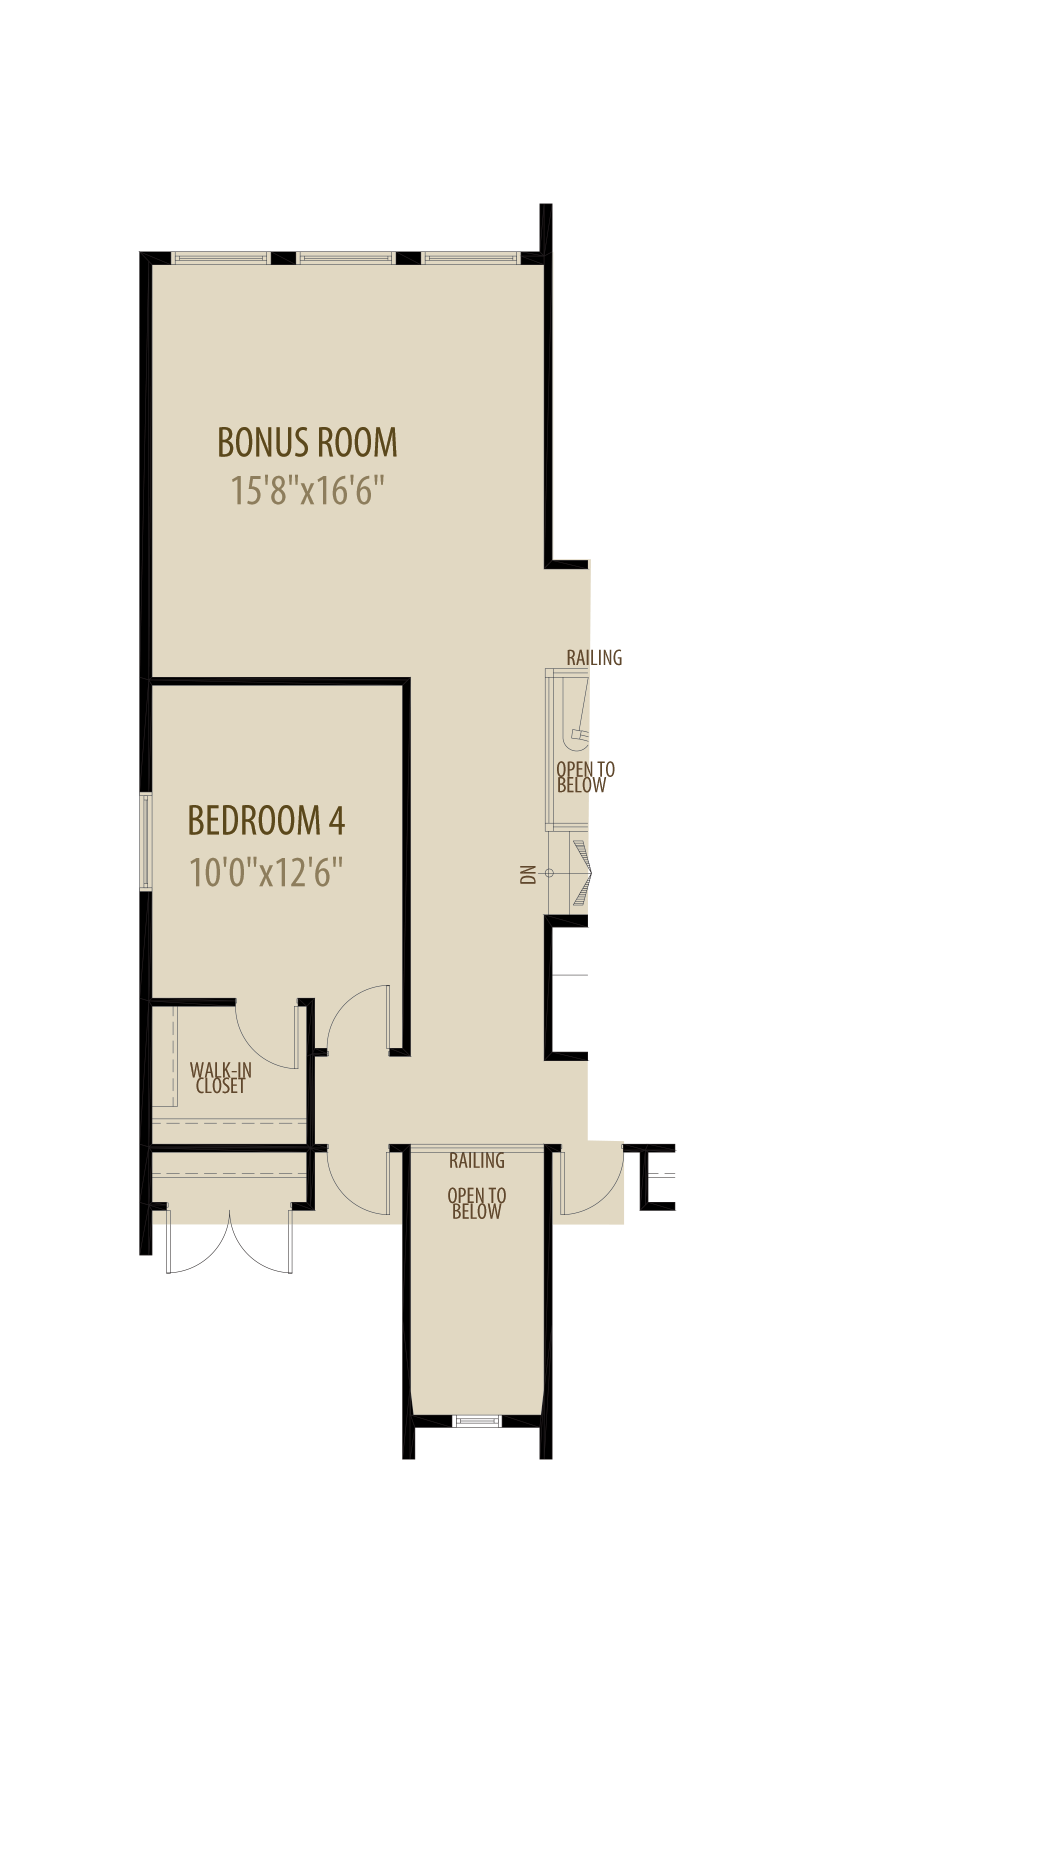 4th Bedroom adds 218sq ft